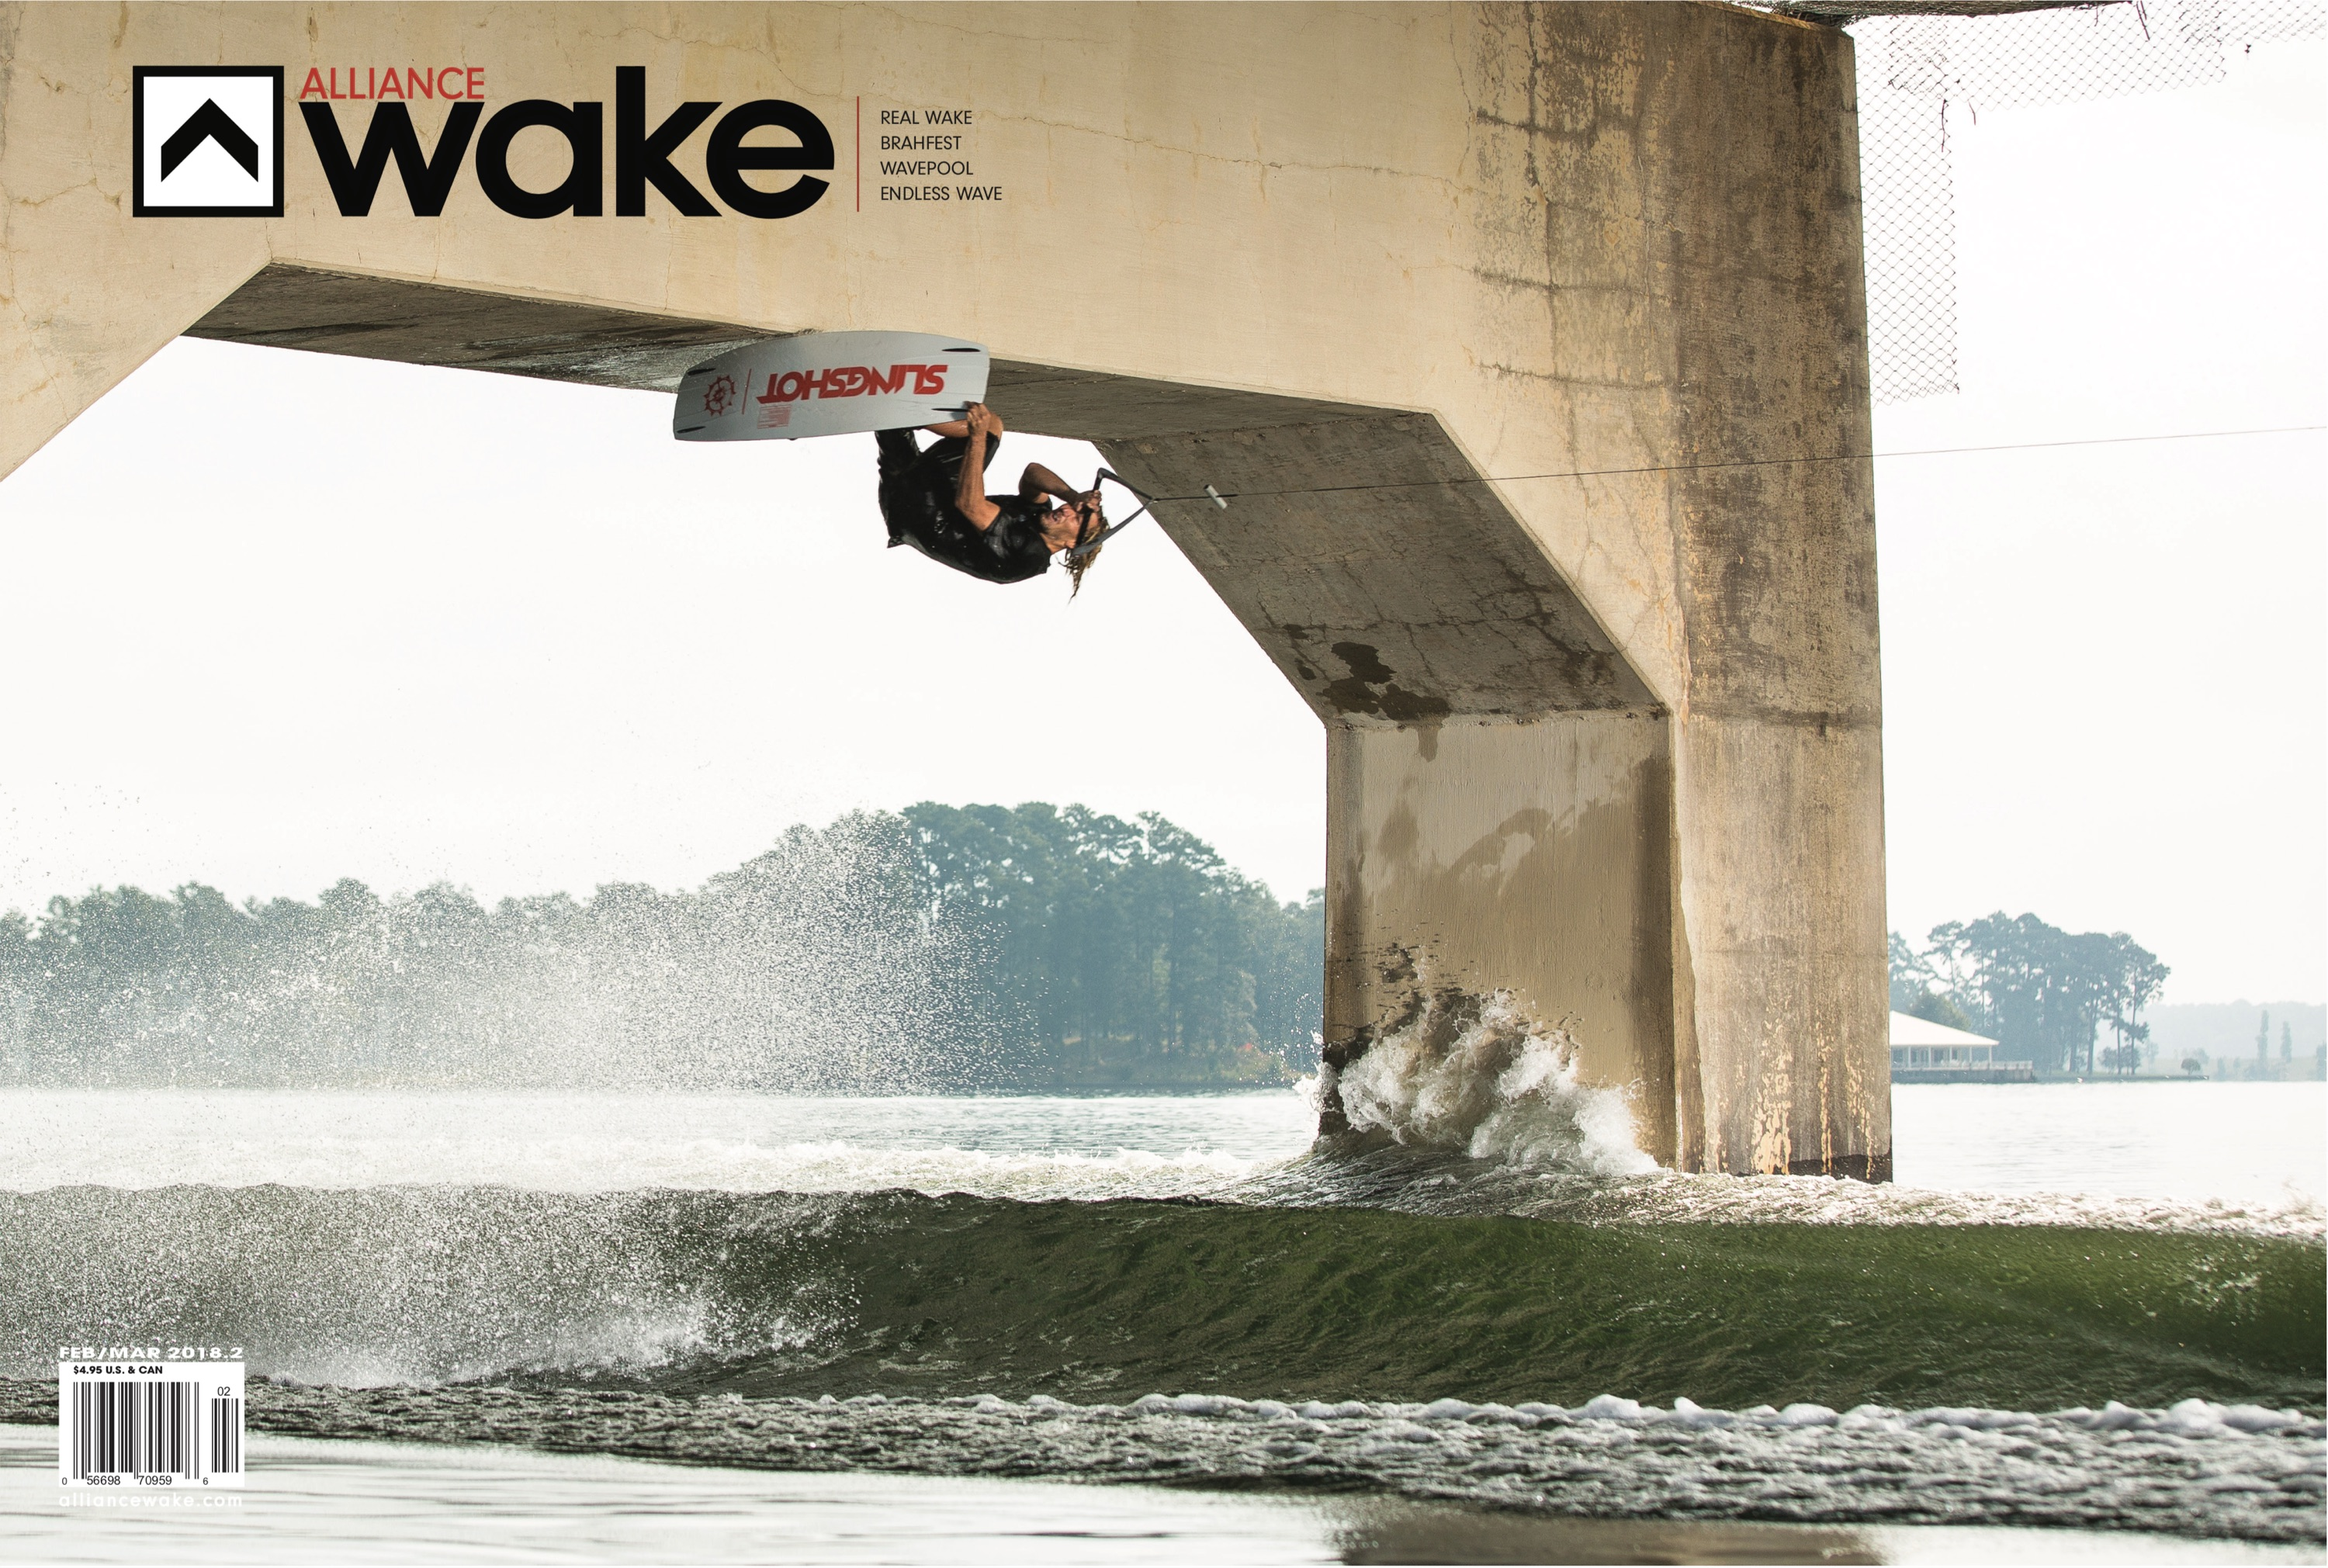 Alex Graydon on the cover of Alliance Wake Magazine